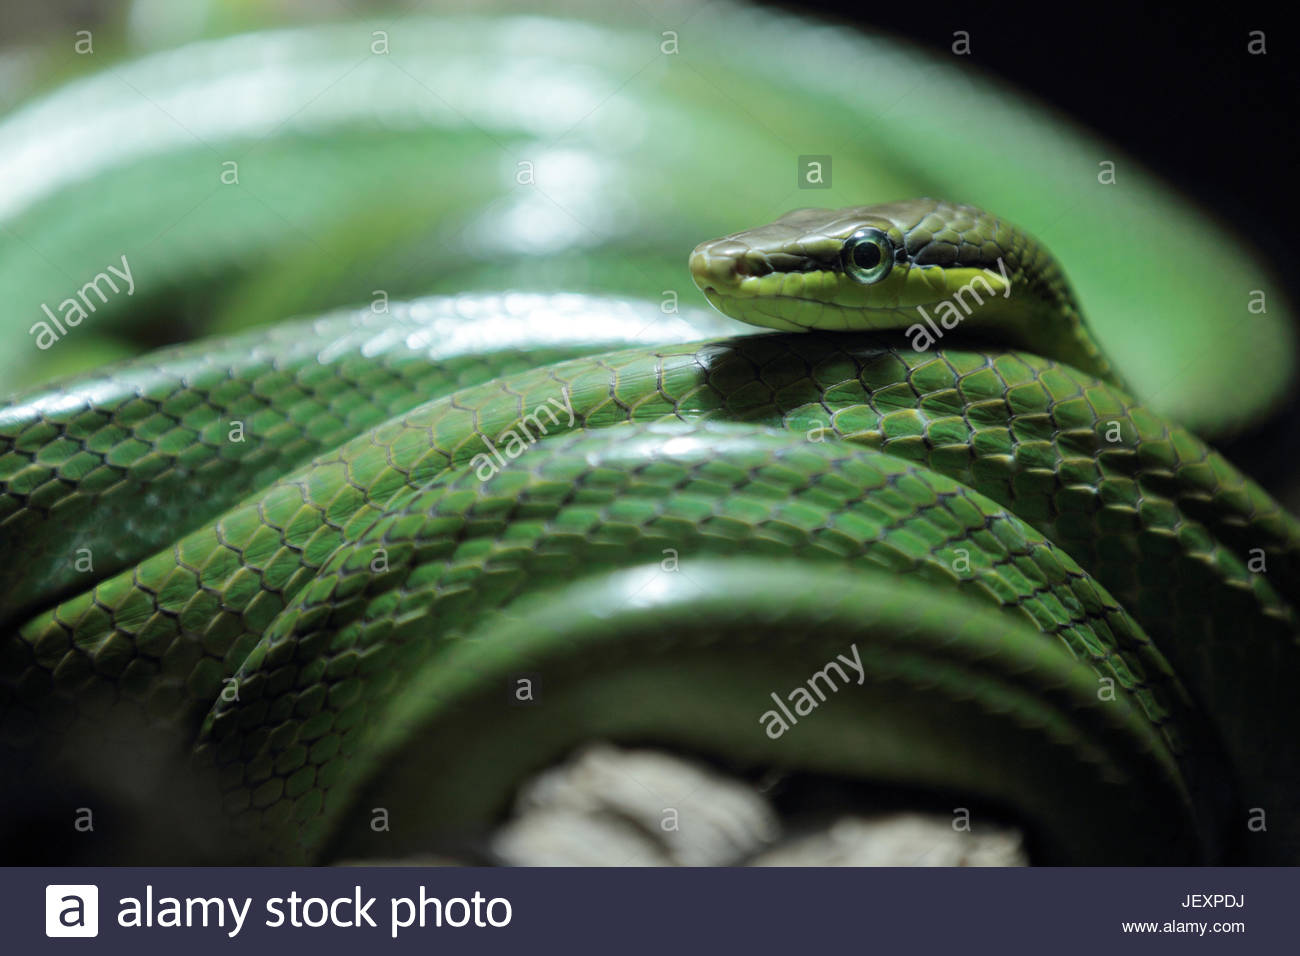 Close up portrait of a red-tailed green rat snake, arboreal rat snake, or red-tailed racer, Gonyosoma oxycephalum, - Stock Image